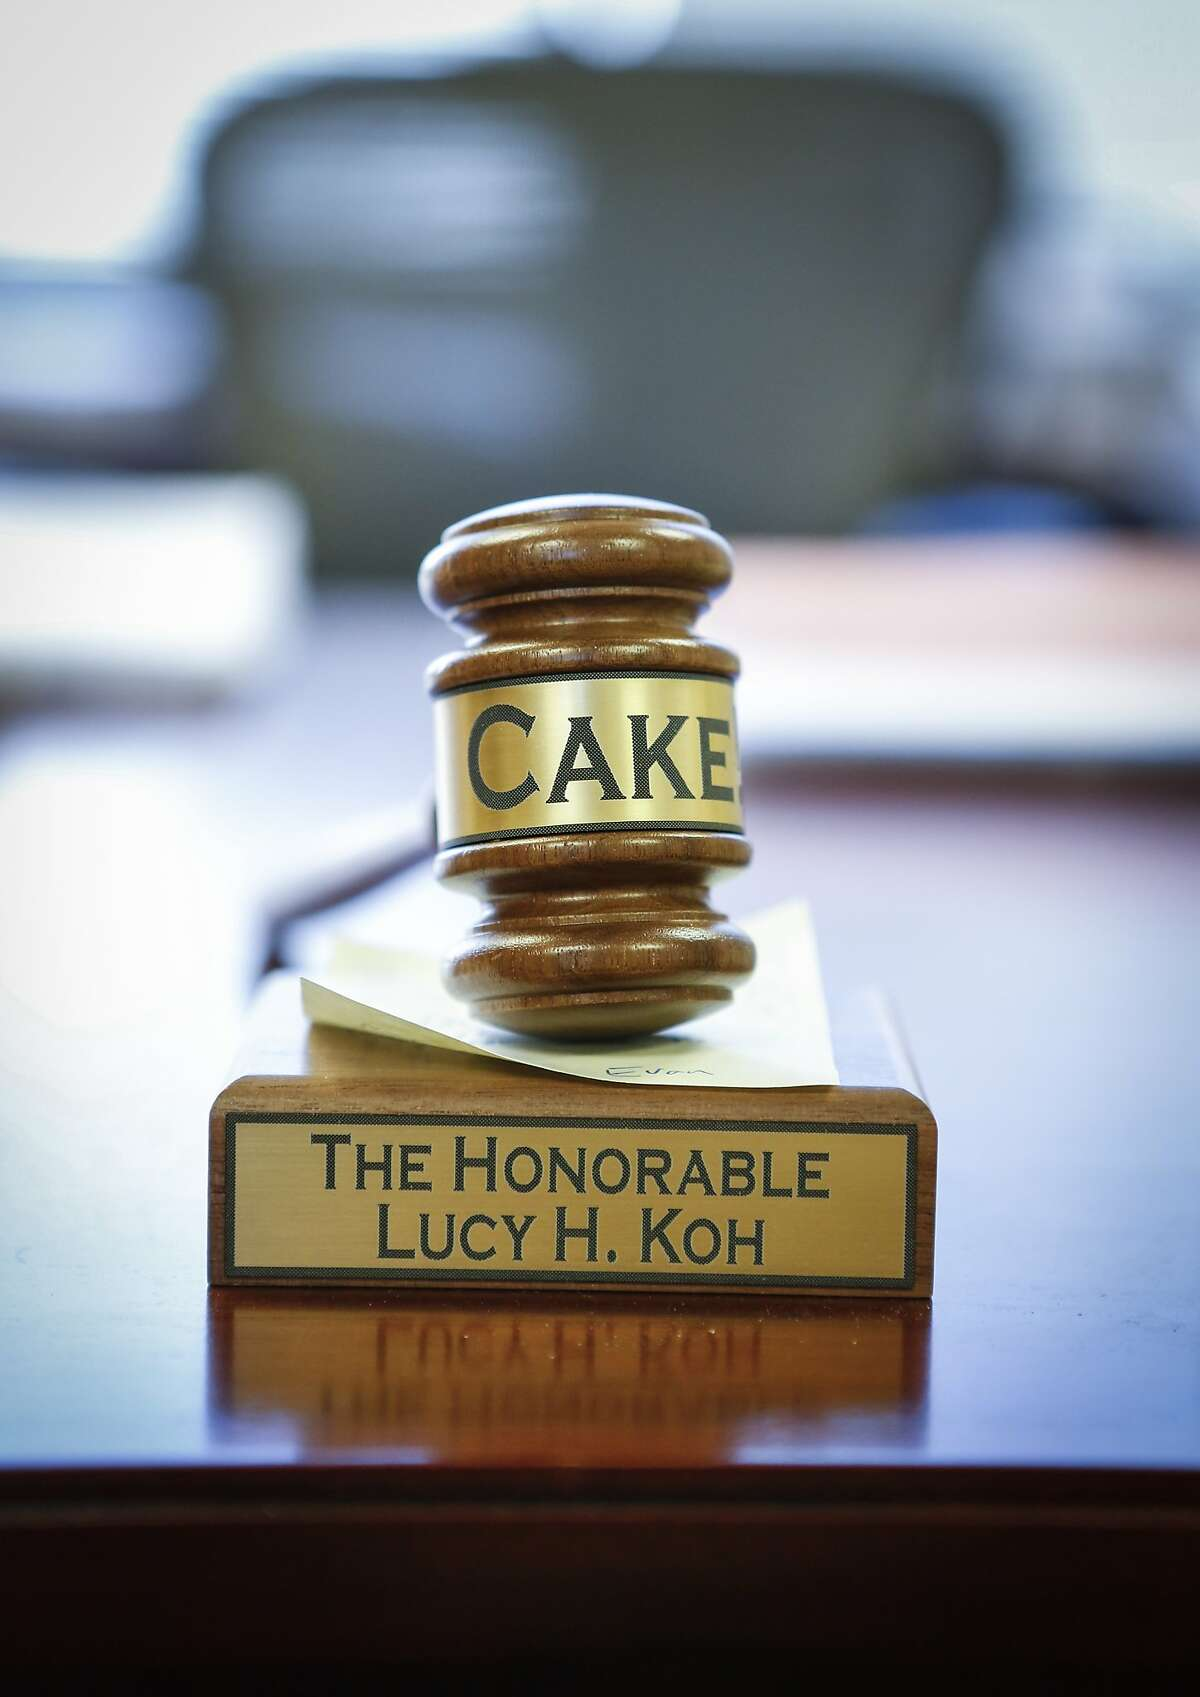 A keepsake given to United States District Court Judge Lucy Koh by a former extern is seen on her desk in her chambers in the Robert F. Peckham Federal Building on Tuesday, July 29, 2014 in San Jose, Calif. Koh frequently hosts cake parties on the birthdays of judges and Court staff. She also has these for her law clerks and externs on their first day, last day, and birthday,